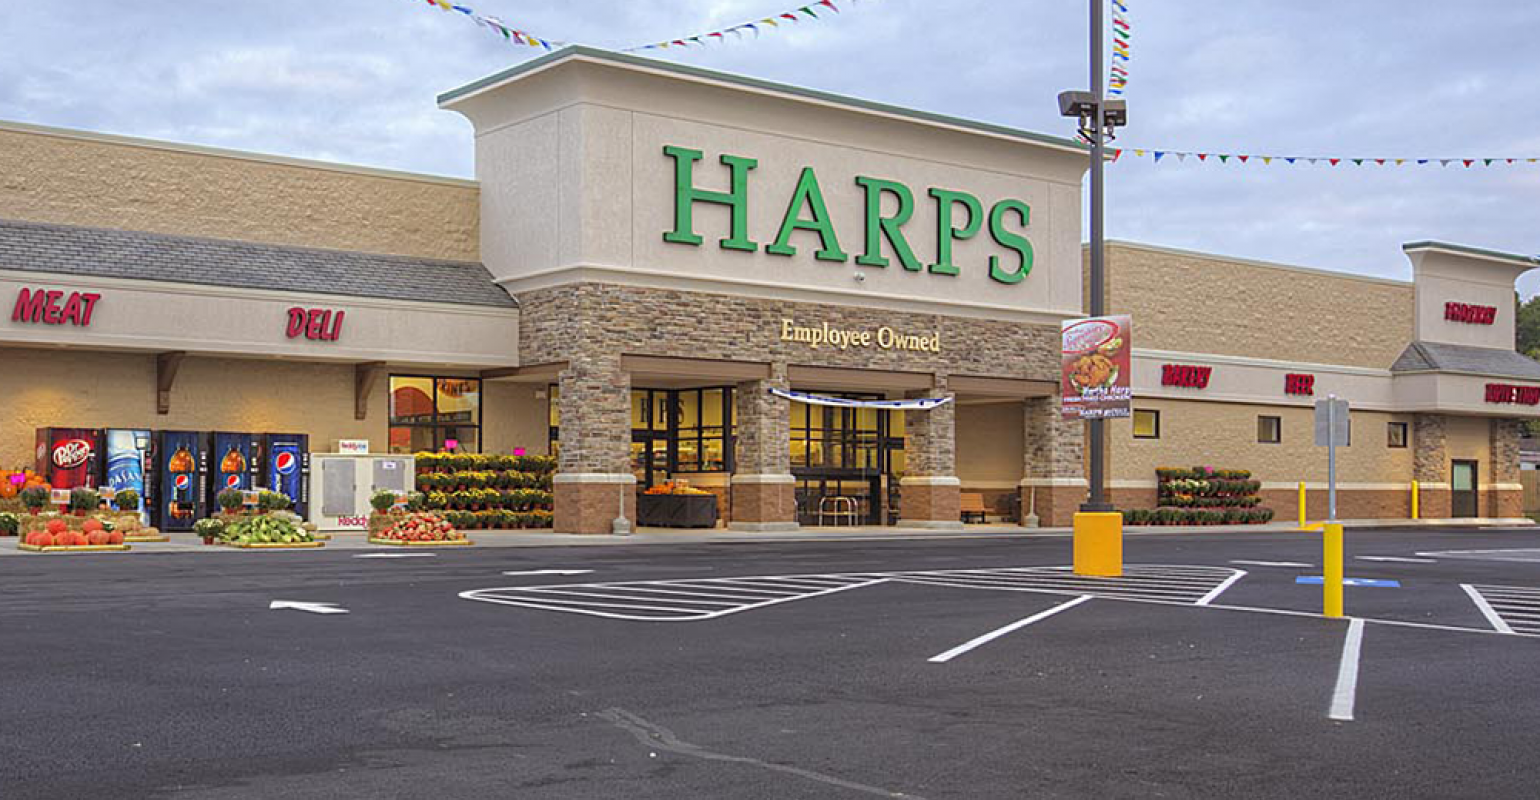 Sprouts, Harps expand Instacart delivery | Supermarket News